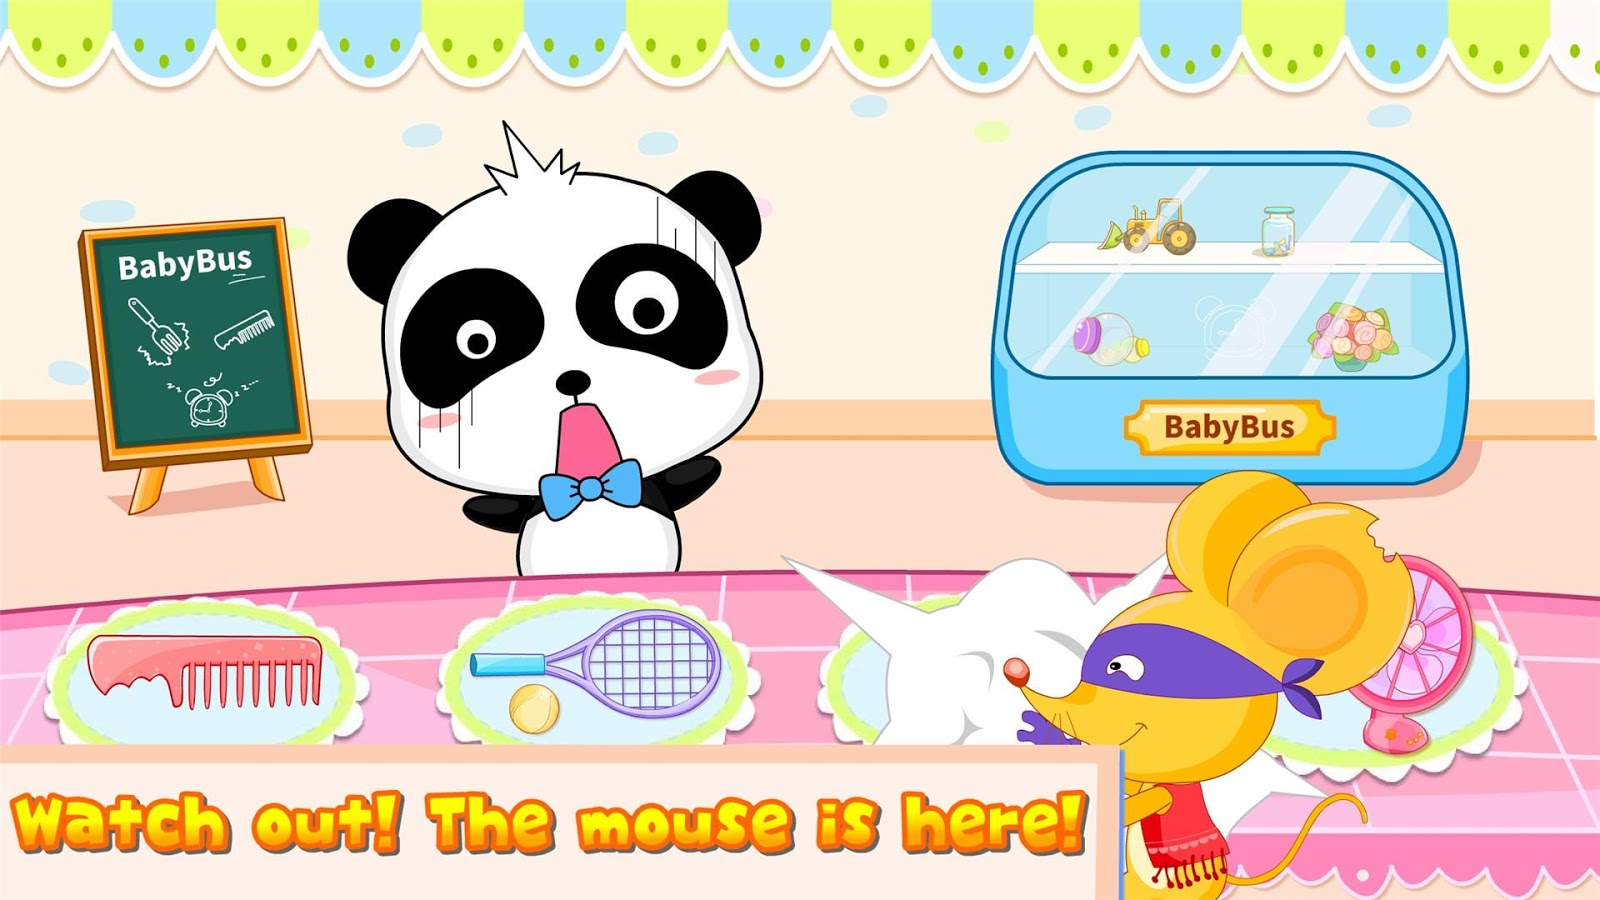 Magic Brush By Babybus Android Apps On Google Play